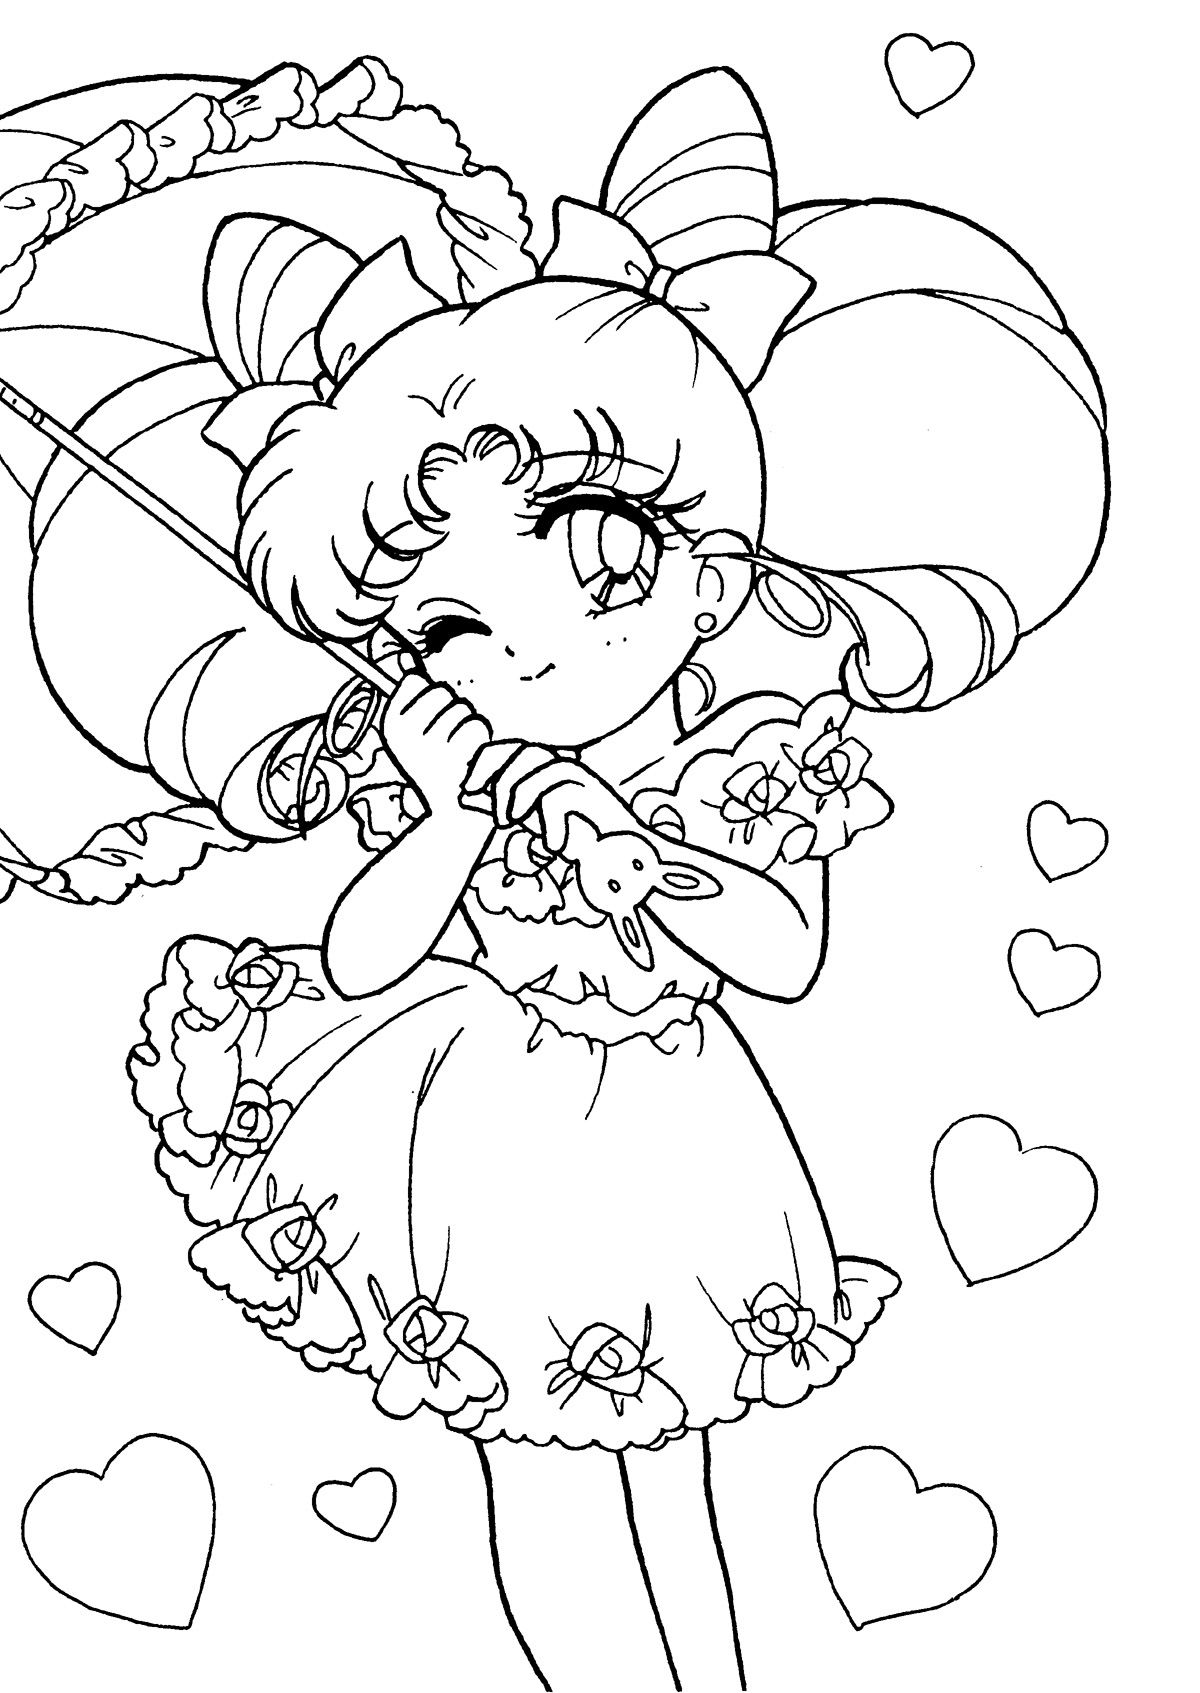 Coloring book pages pinterest - Tsuki Matsuri The Sailormoon Coloring Book Archive